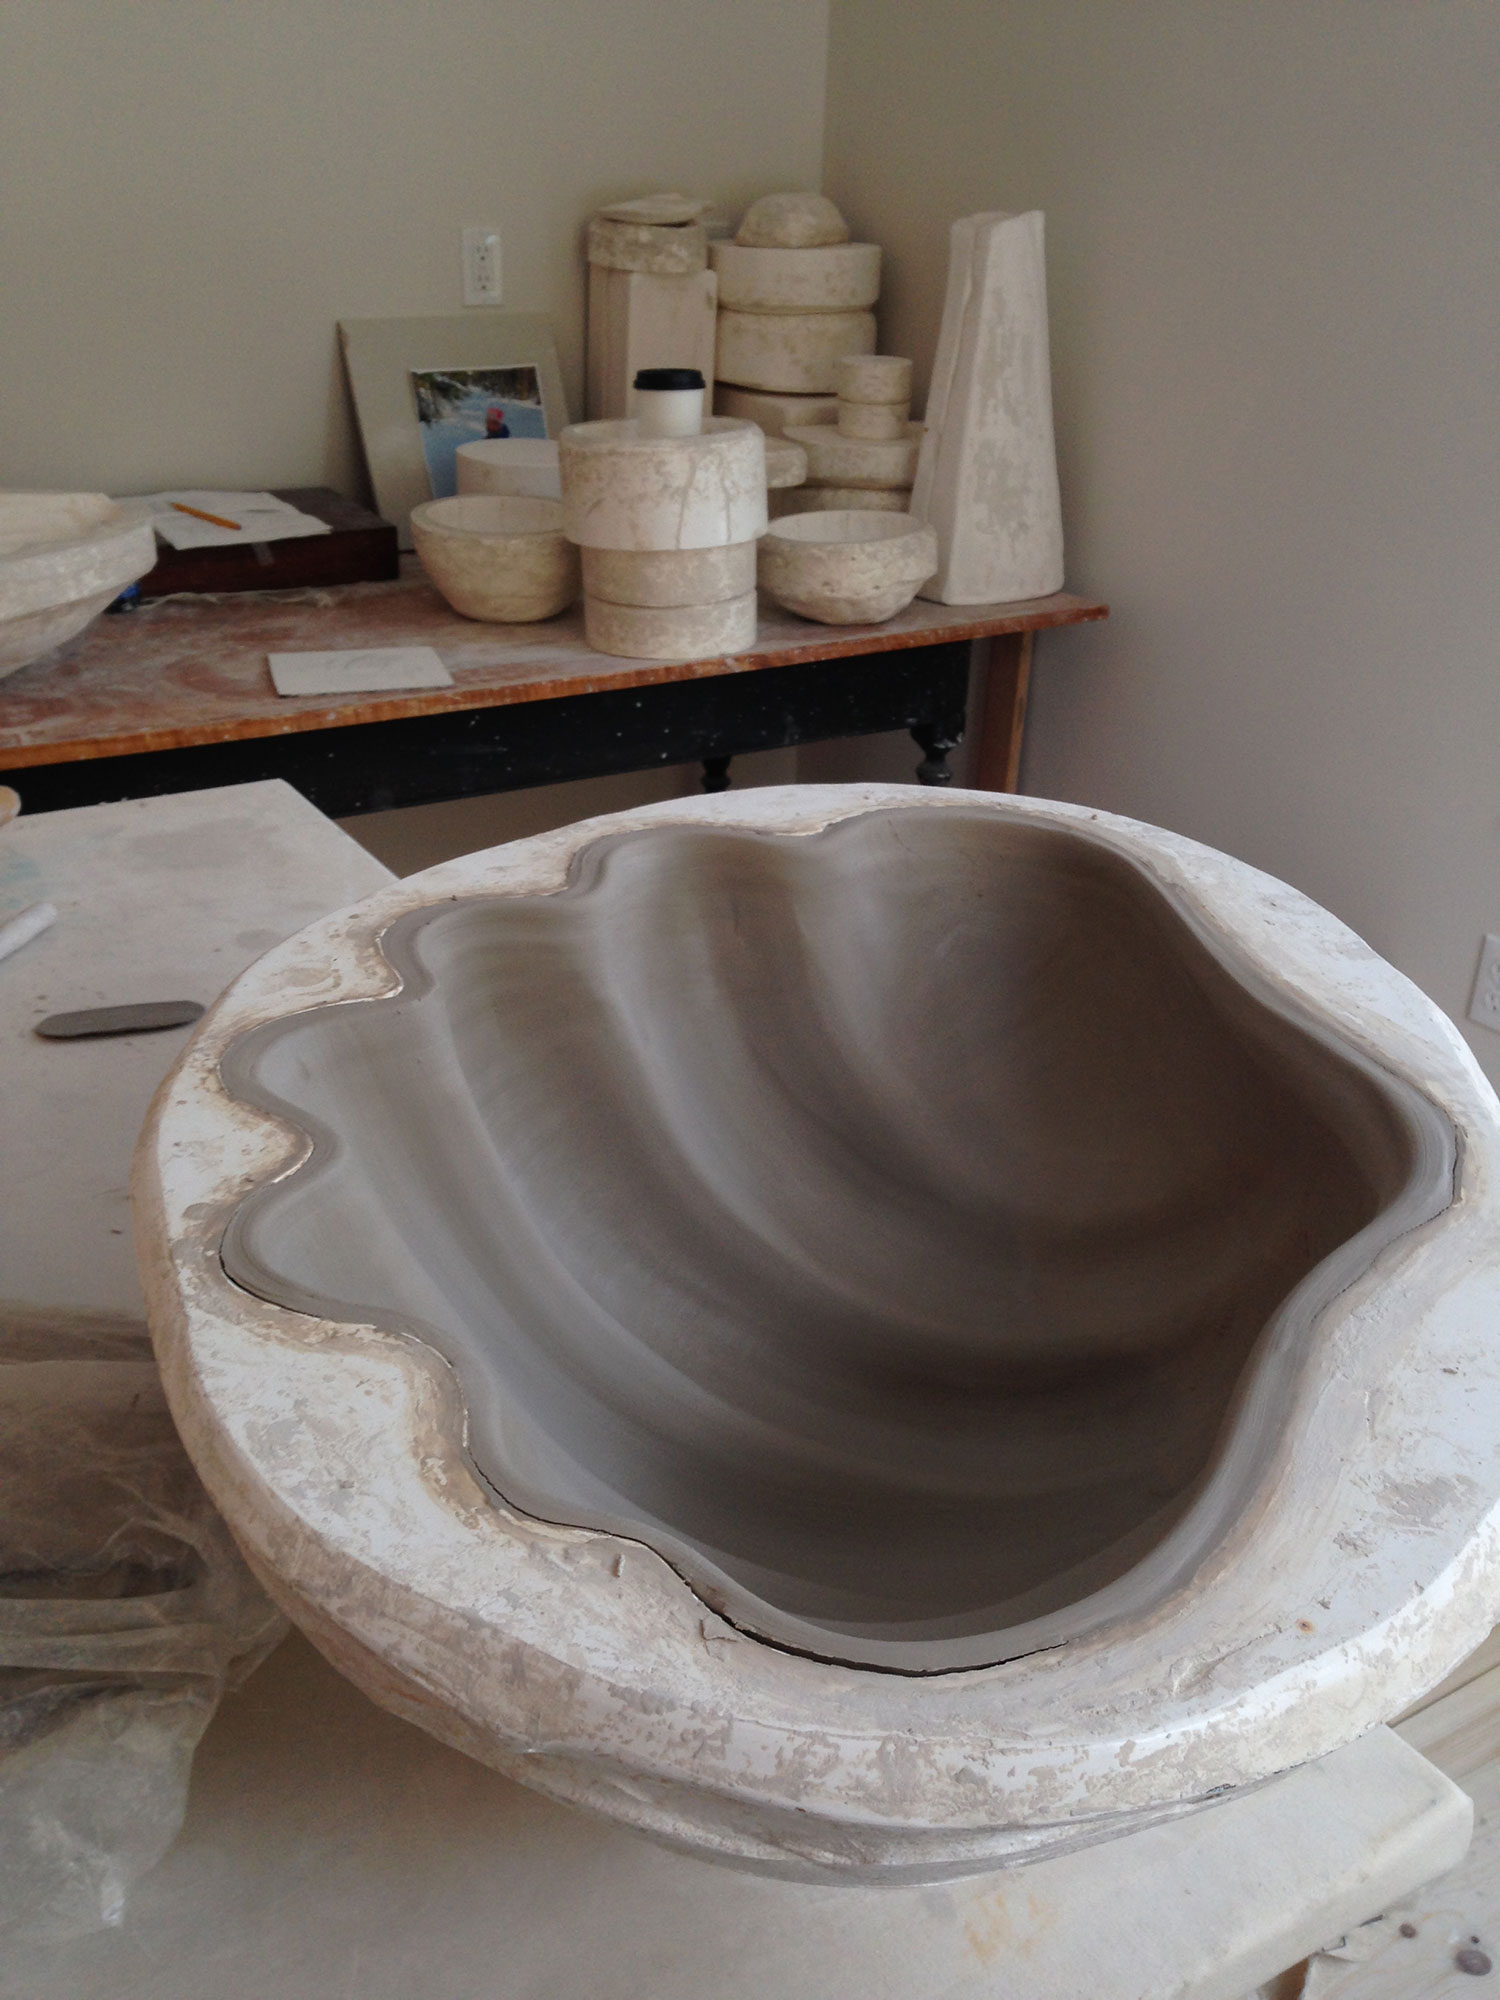 Clam Sink in Mold